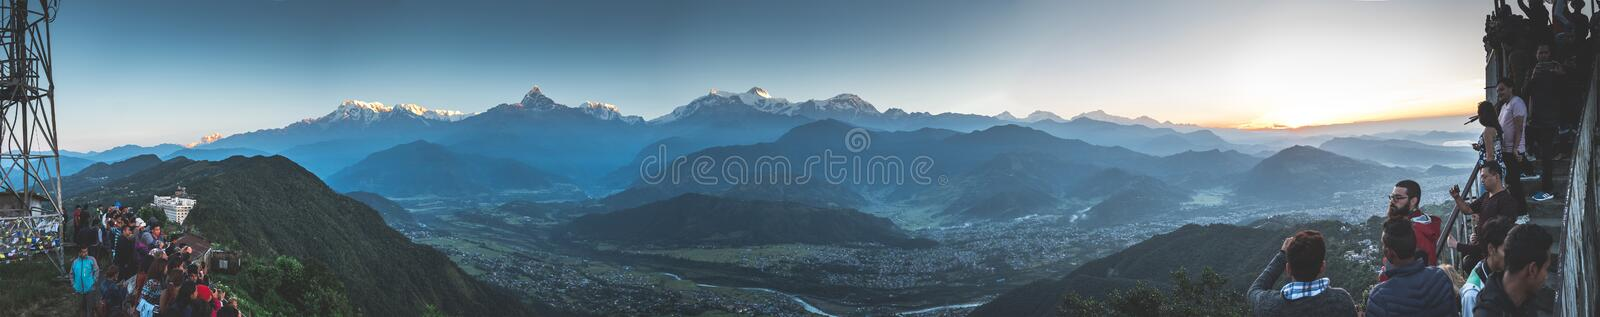 Panoramic view on Annapurna mountain range at sunset royalty free stock image